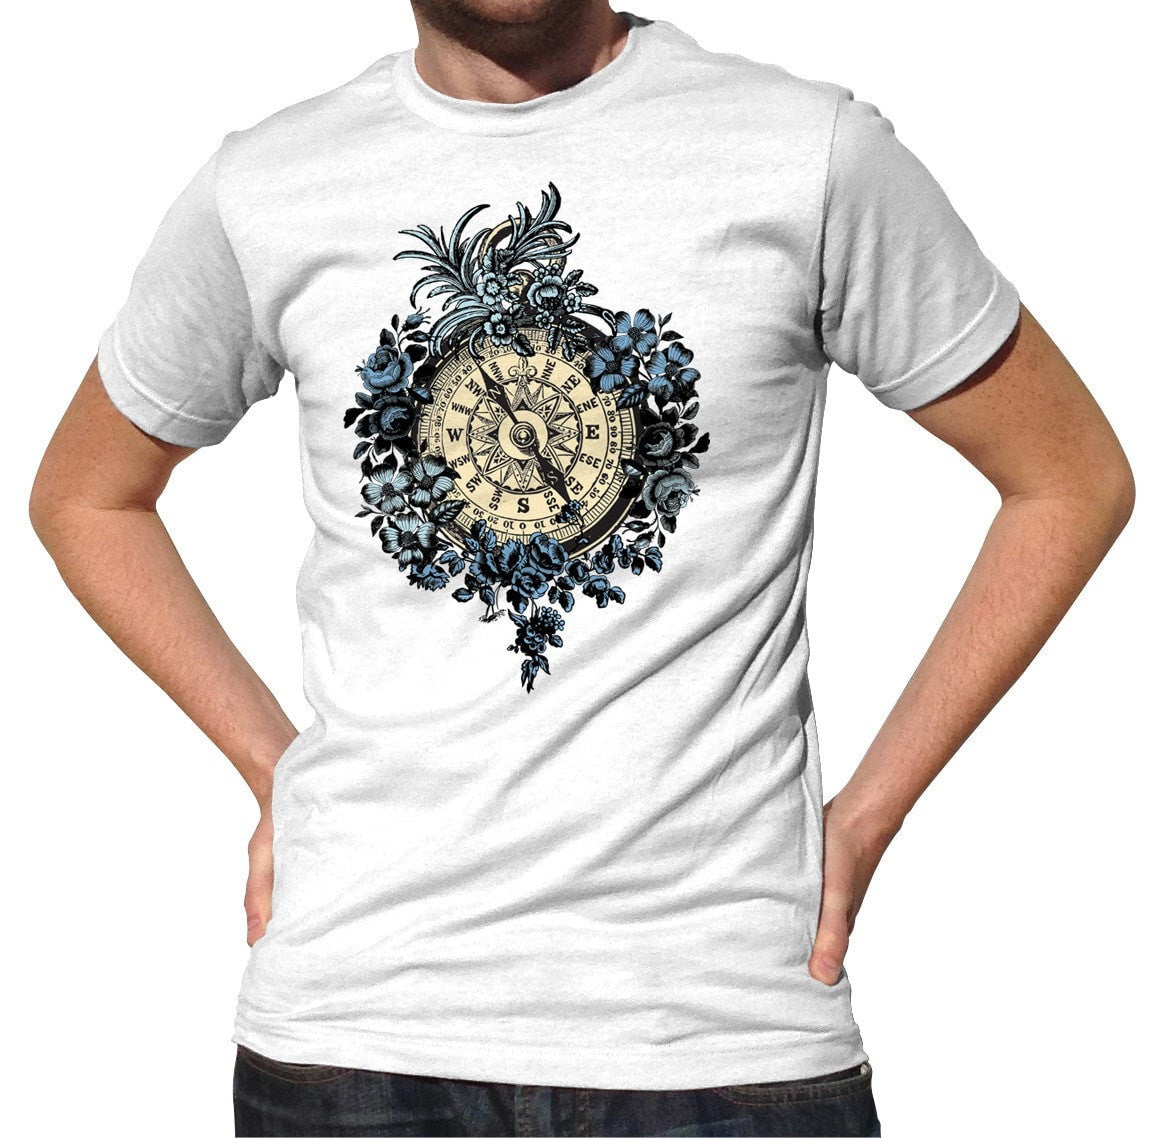 Men's Vintage Floral Compass T-Shirt Feminine Tattoo Inspired